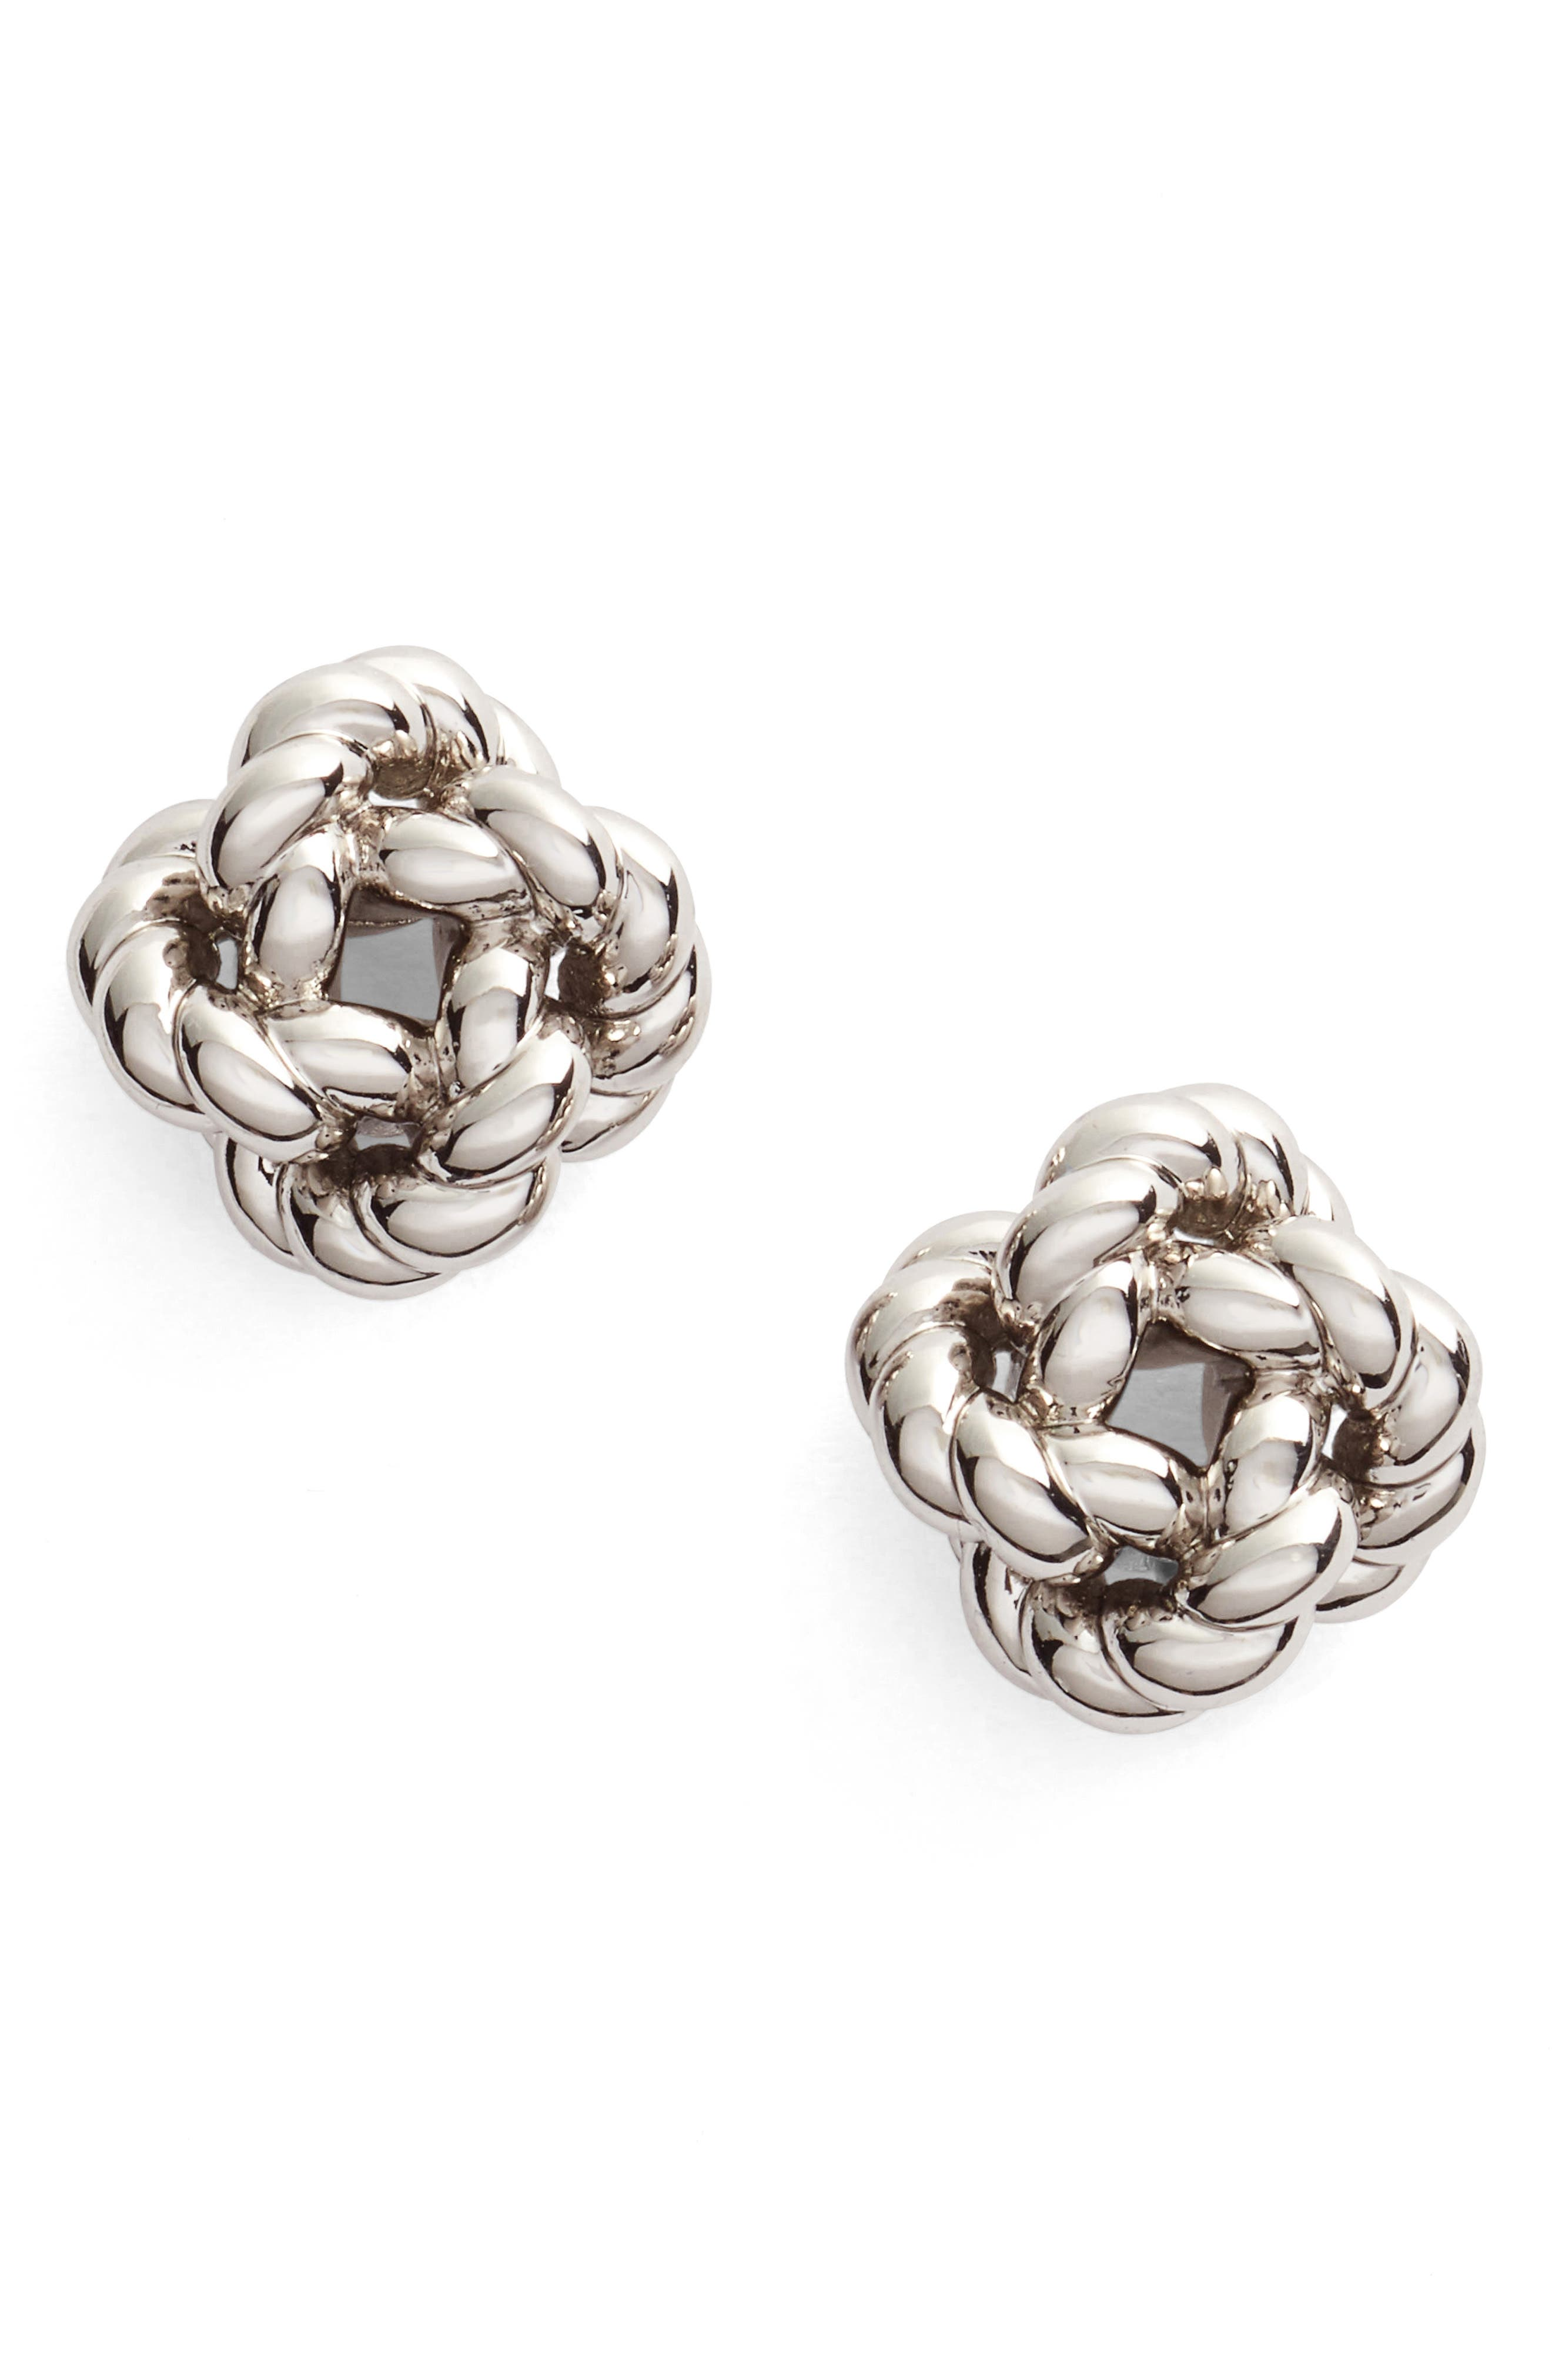 Rope Knot Stud Earrings,                         Main,                         color, TORY SILVER